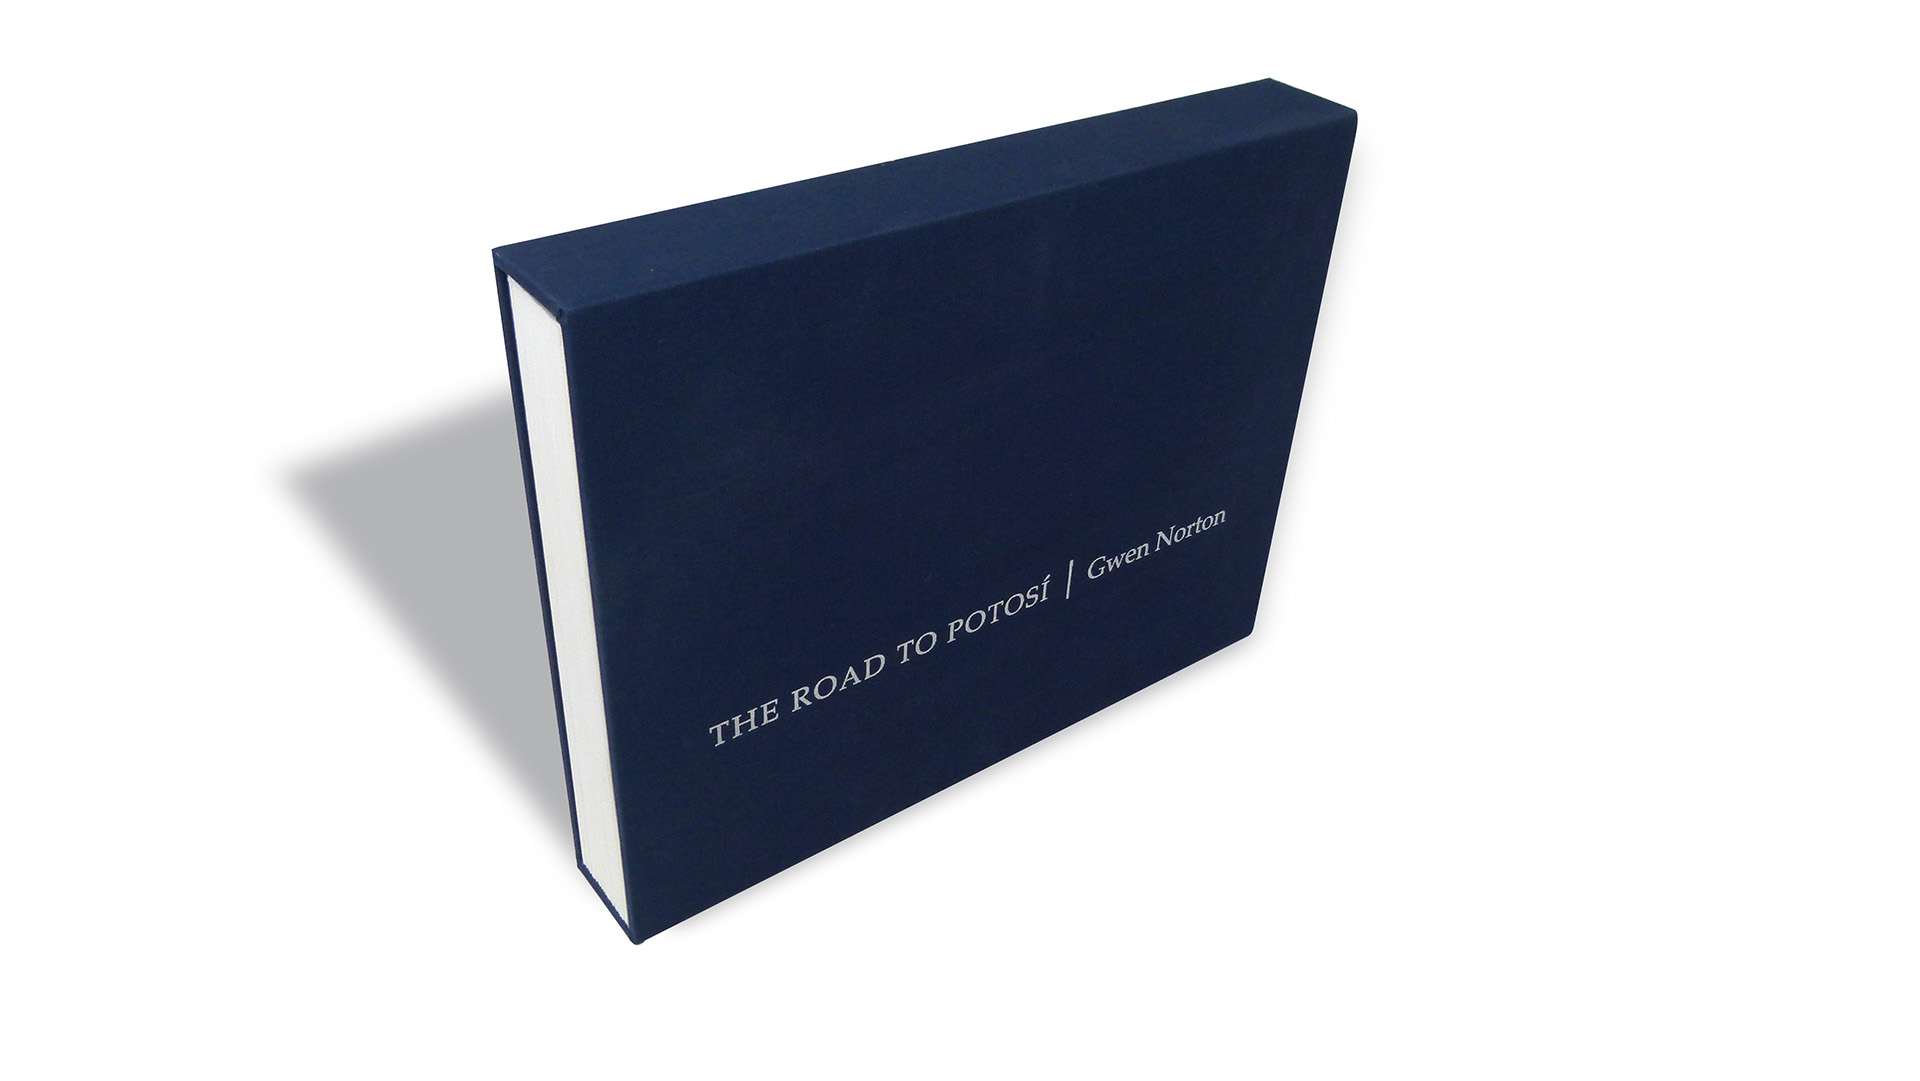 Creative Book Design: 'The Road to Potosí' - PaperSpecs